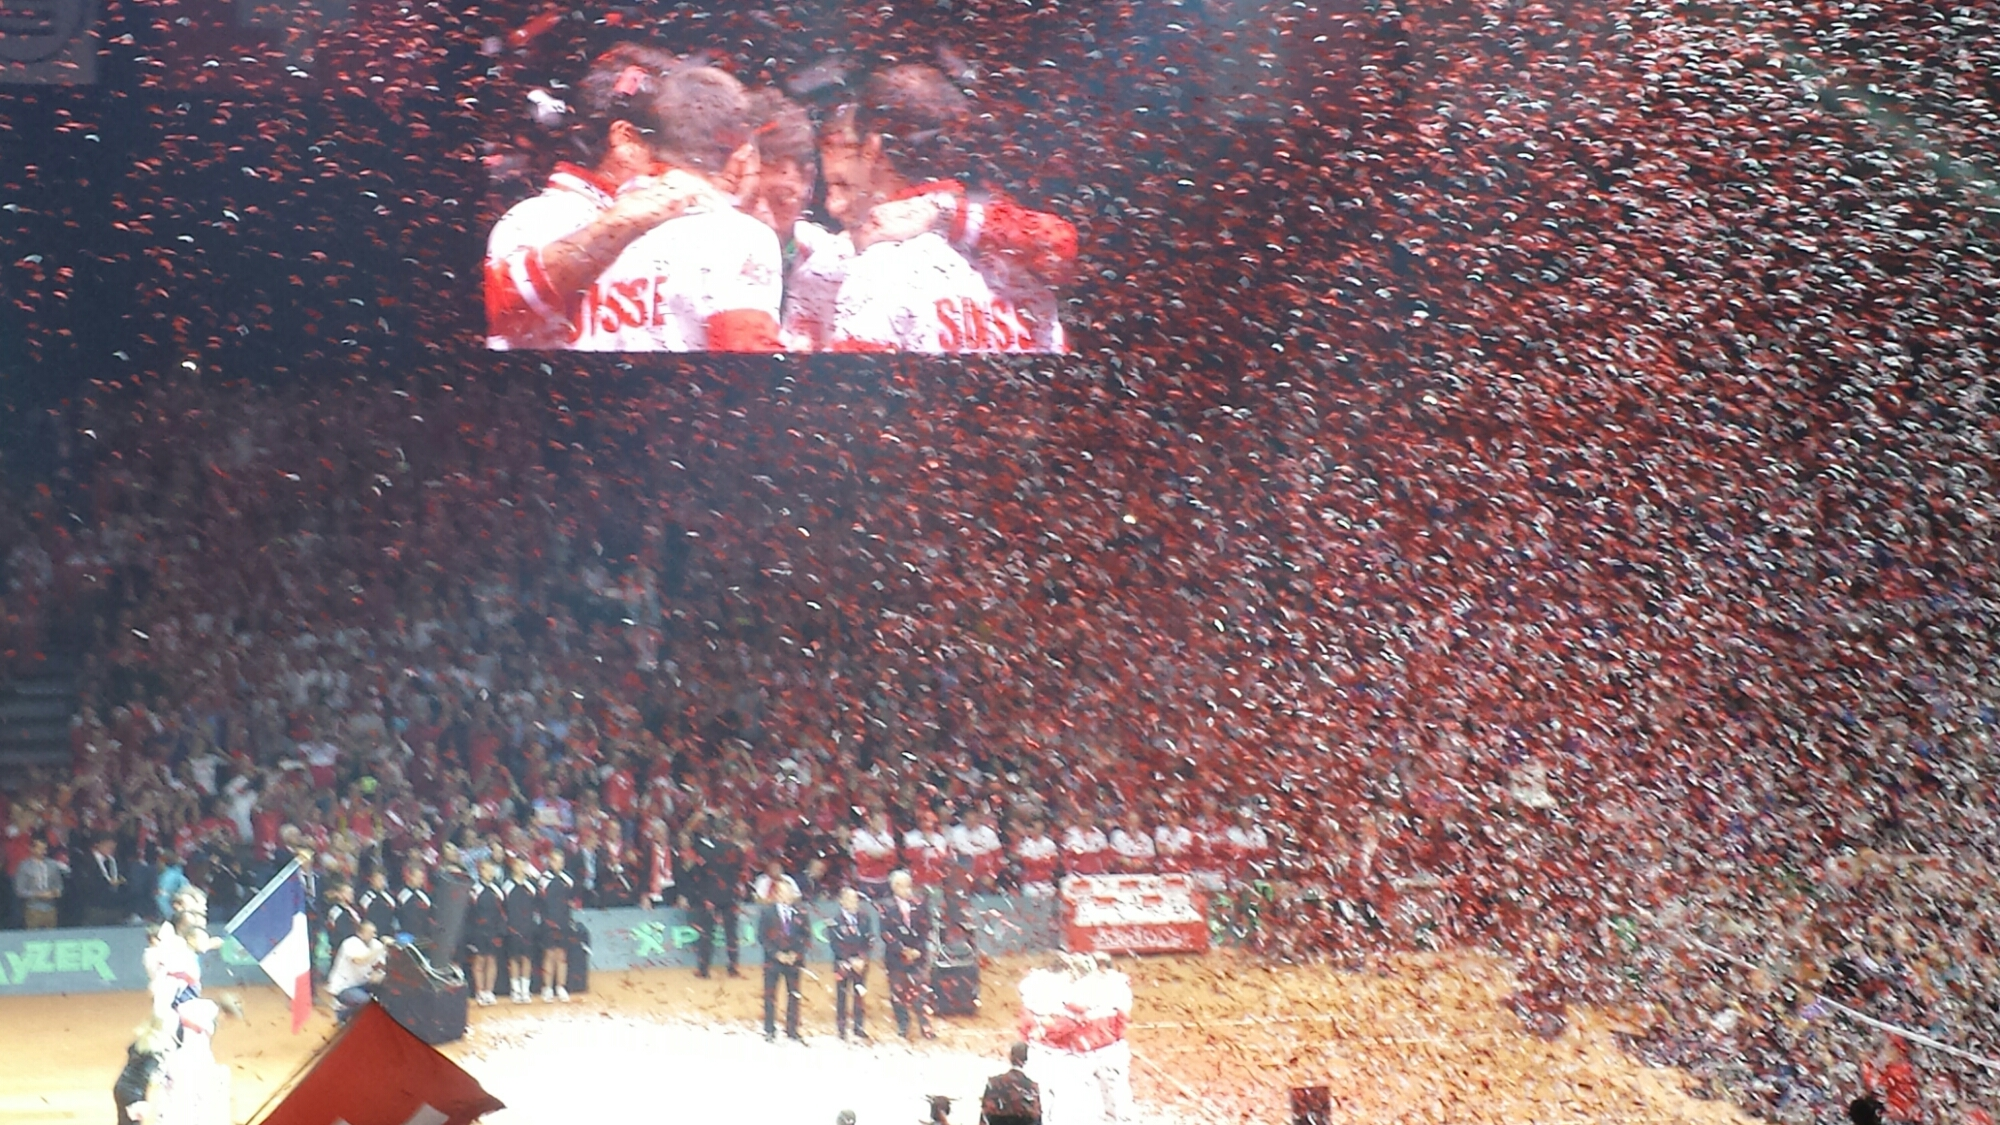 Swiss Team with Confetti